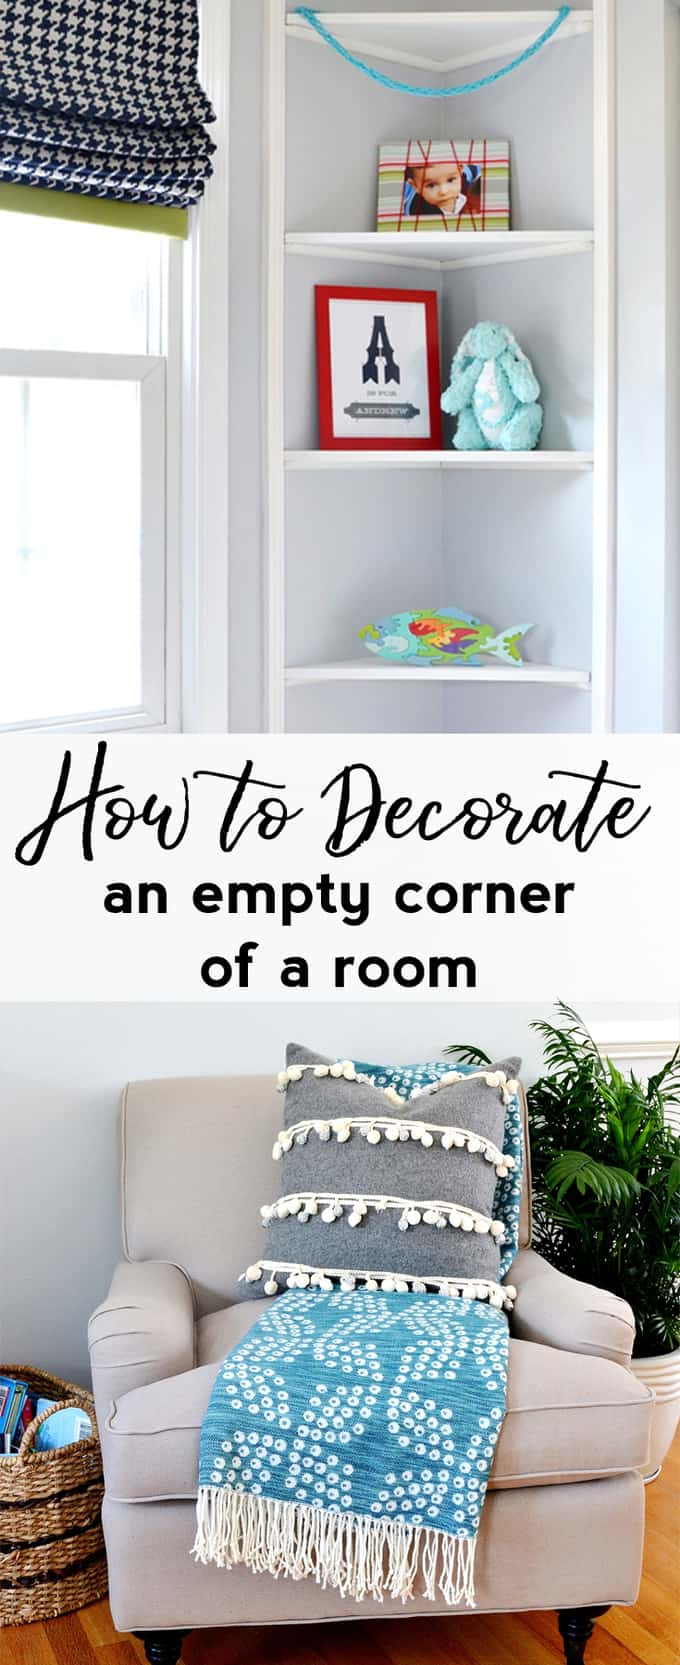 Easy ways to decorate an empty corner of a room! Sharing affordable home decor tips and tricks.